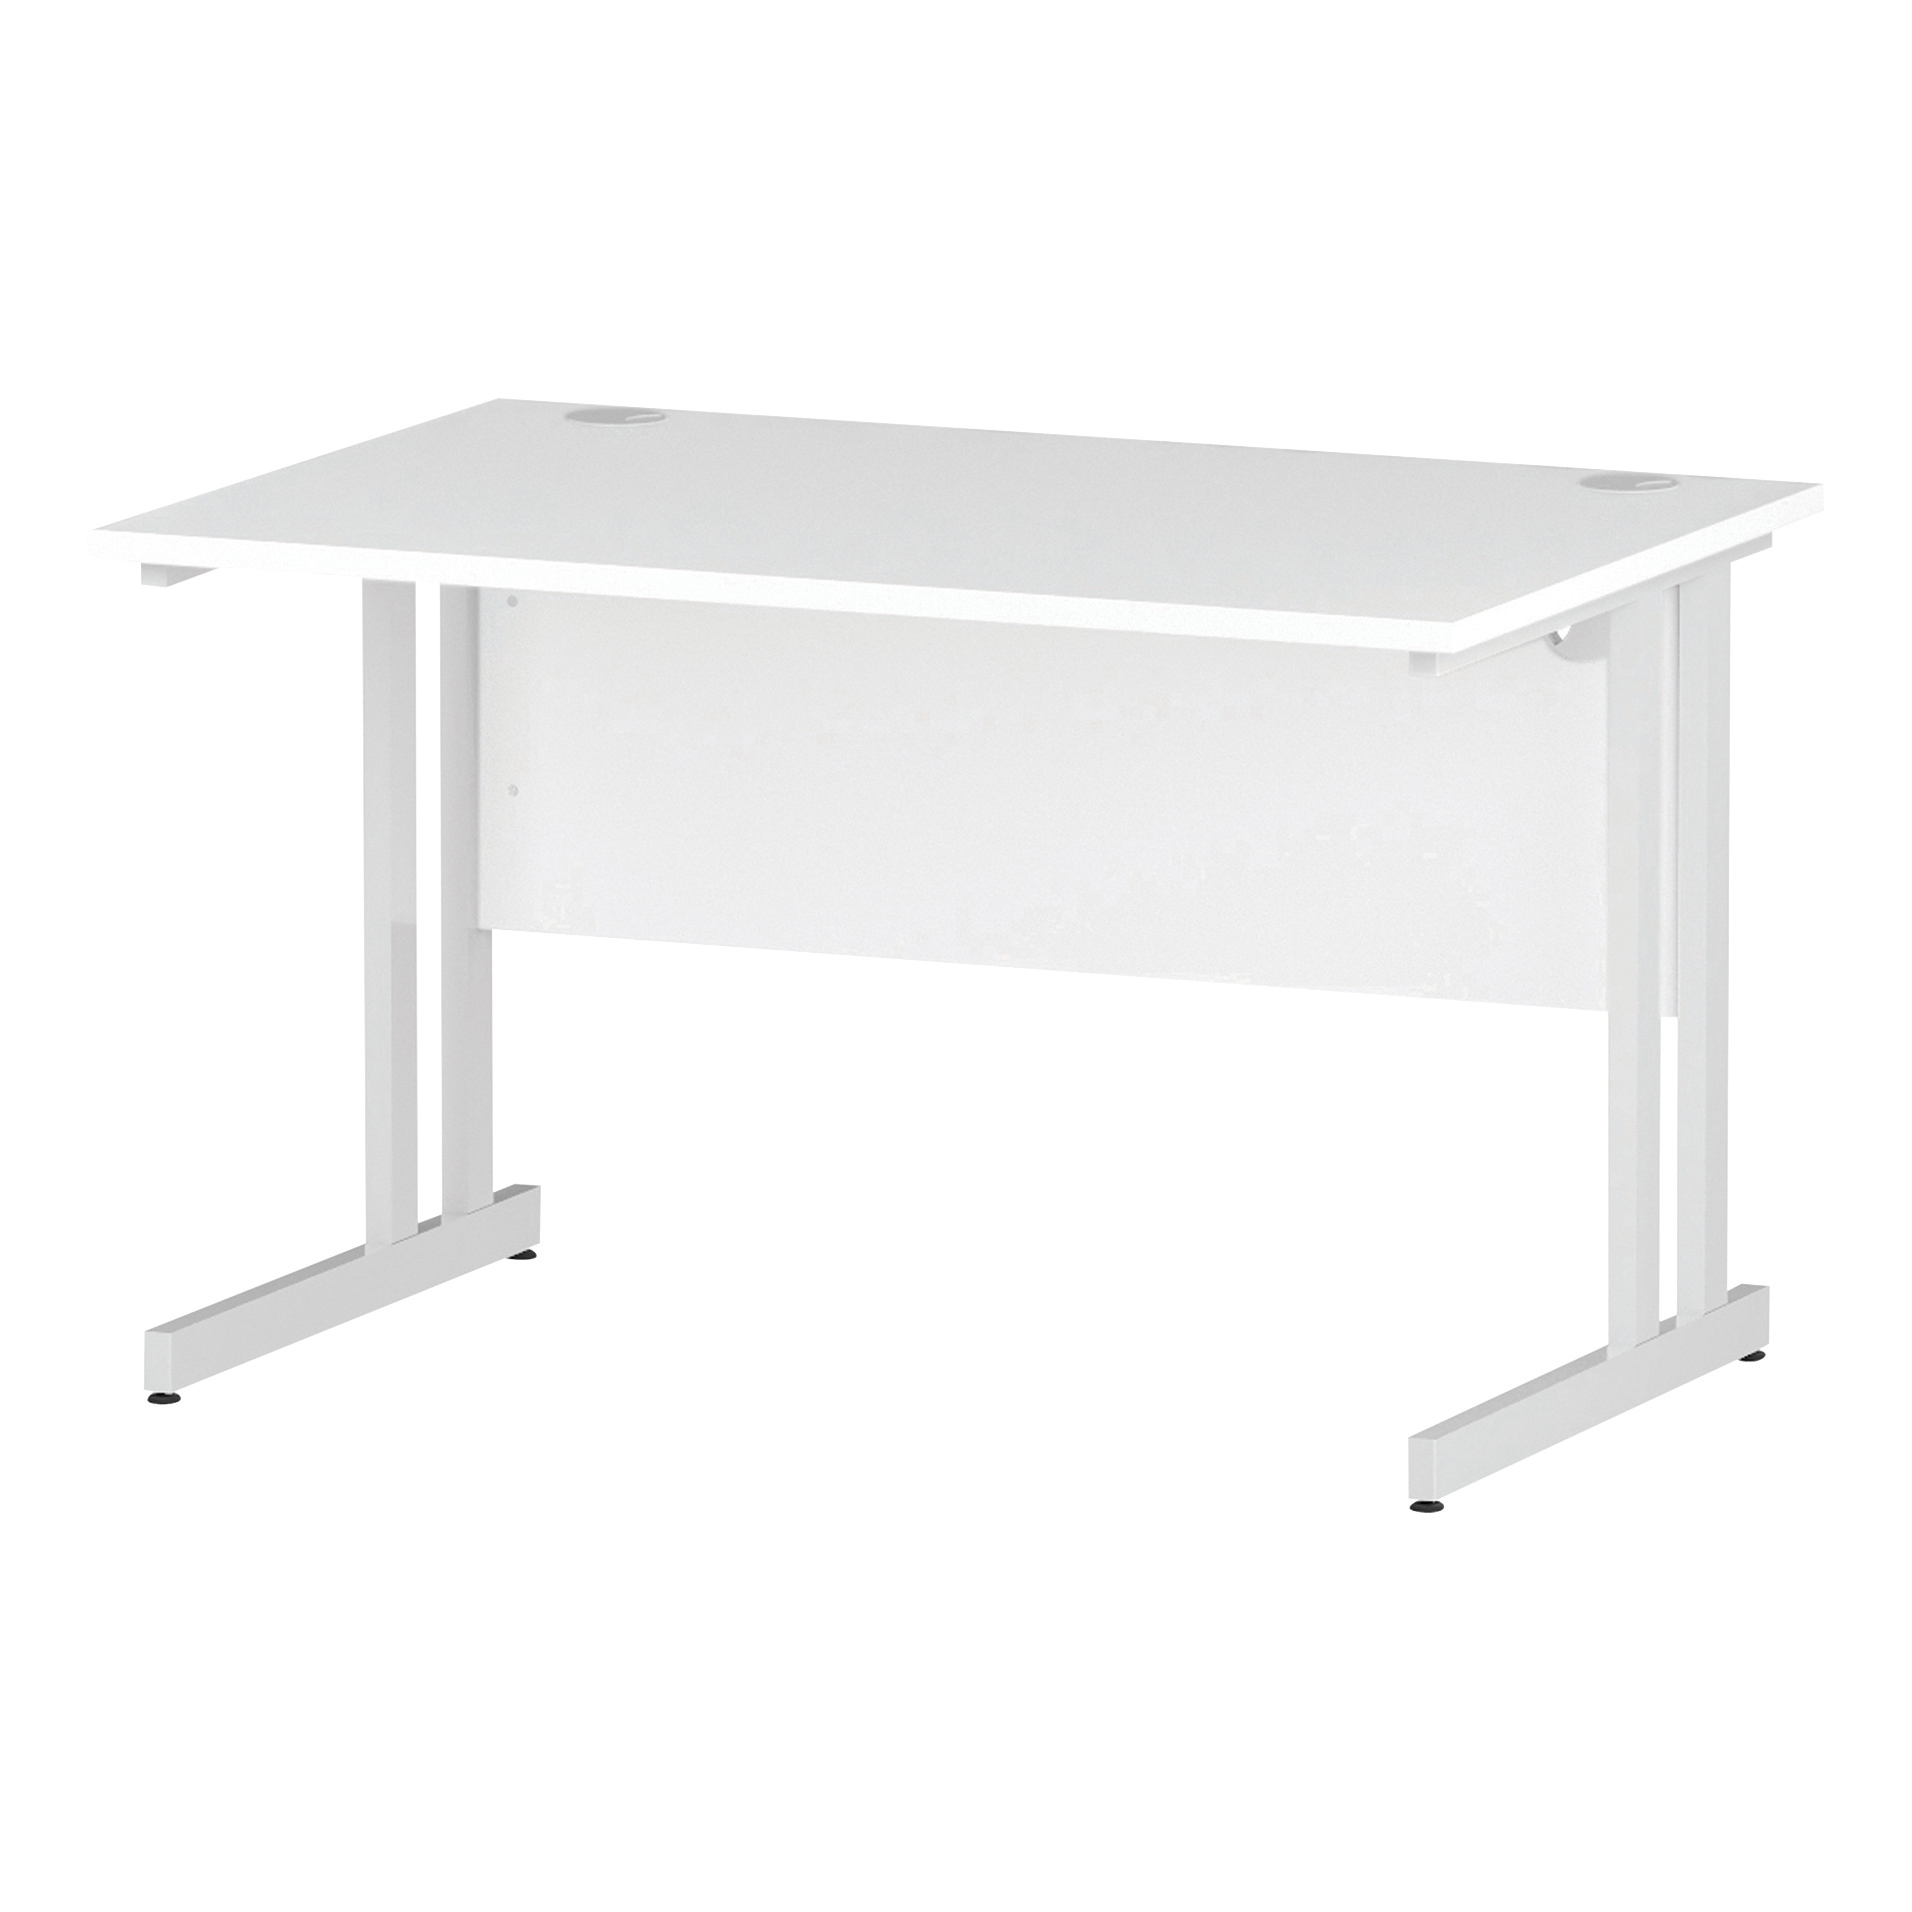 Trexus Rectangular Desk White Cantilever Leg 1200x800mm White Ref I002191